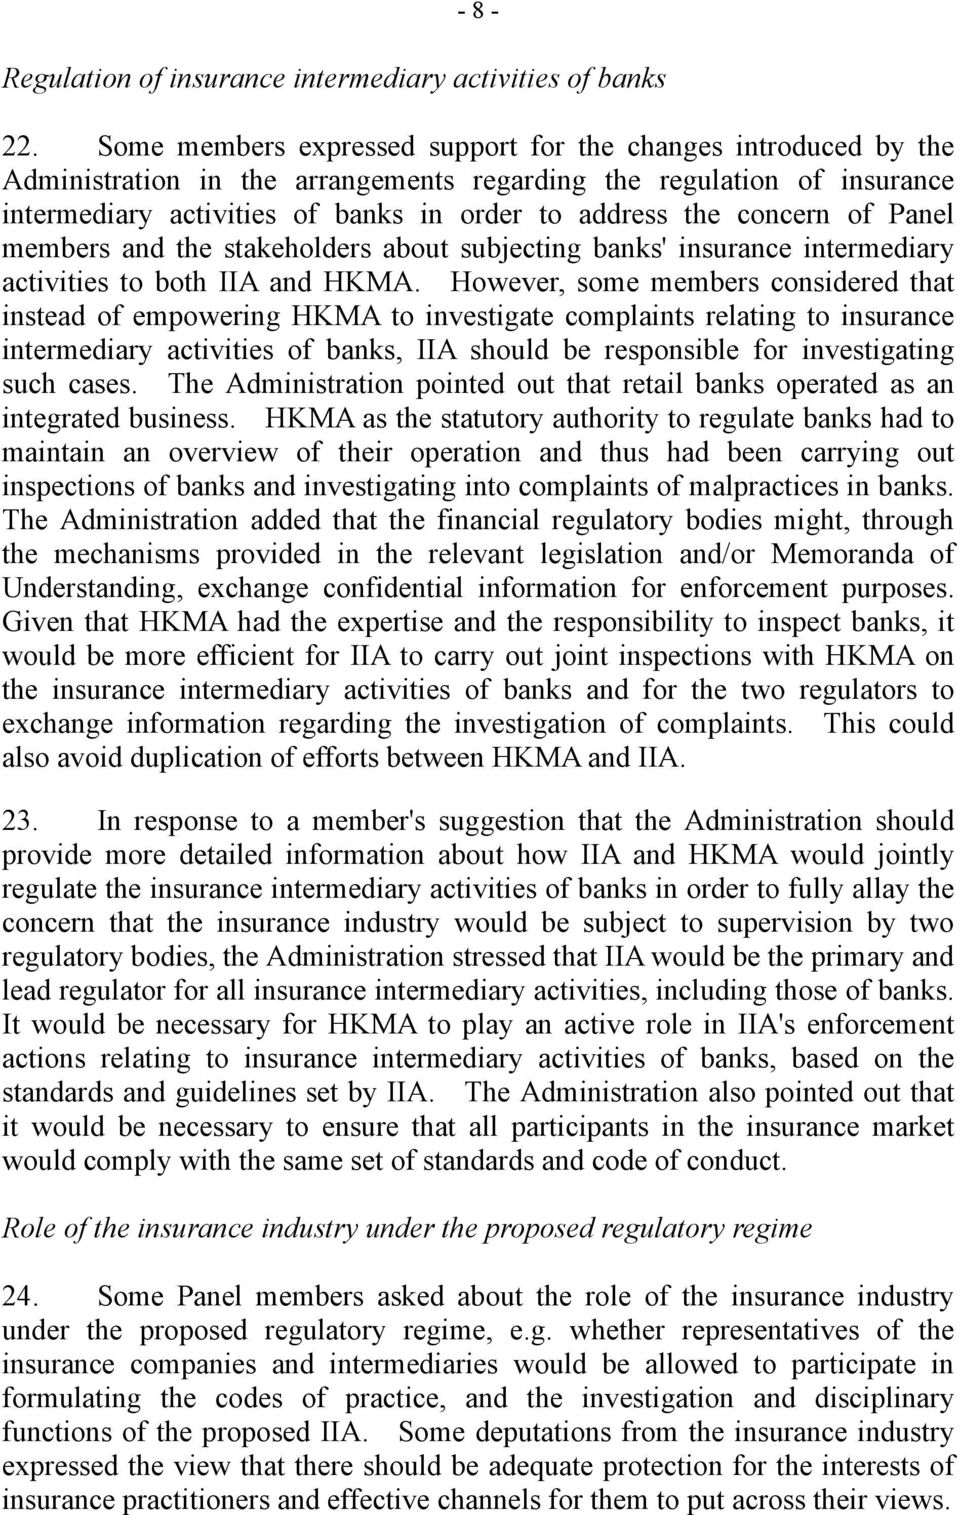 concern of Panel members and the stakeholders about subjecting banks' insurance intermediary activities to both IIA and HKMA.